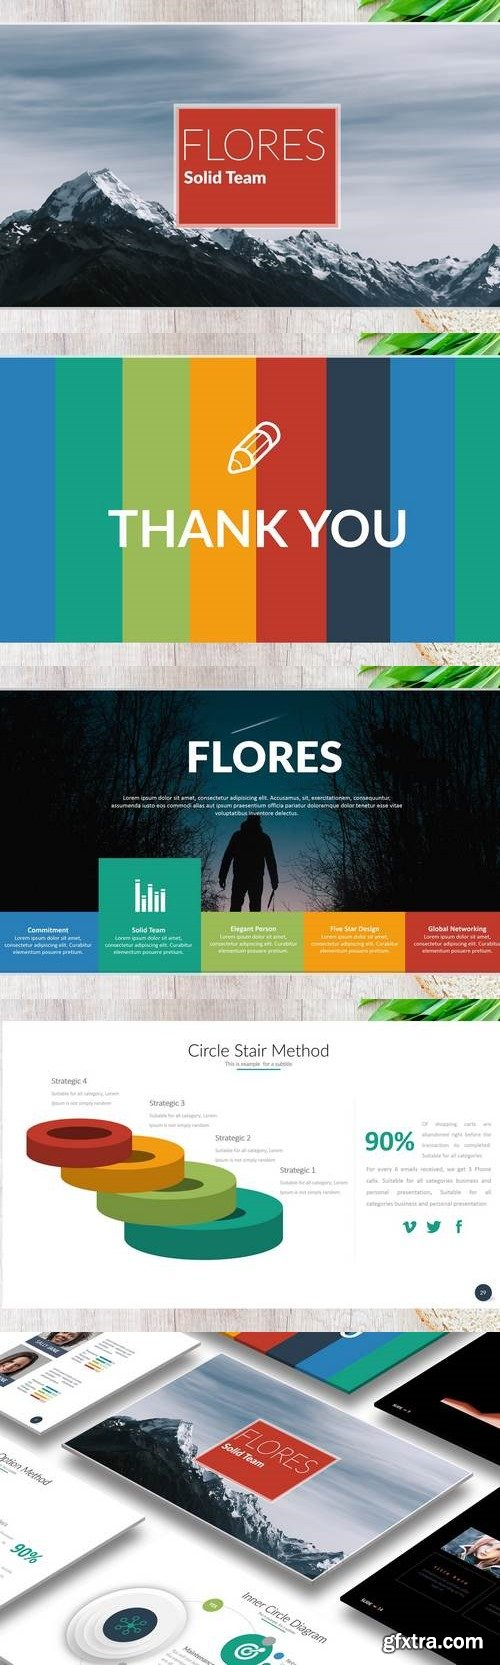 FLORES Powerpoint Template